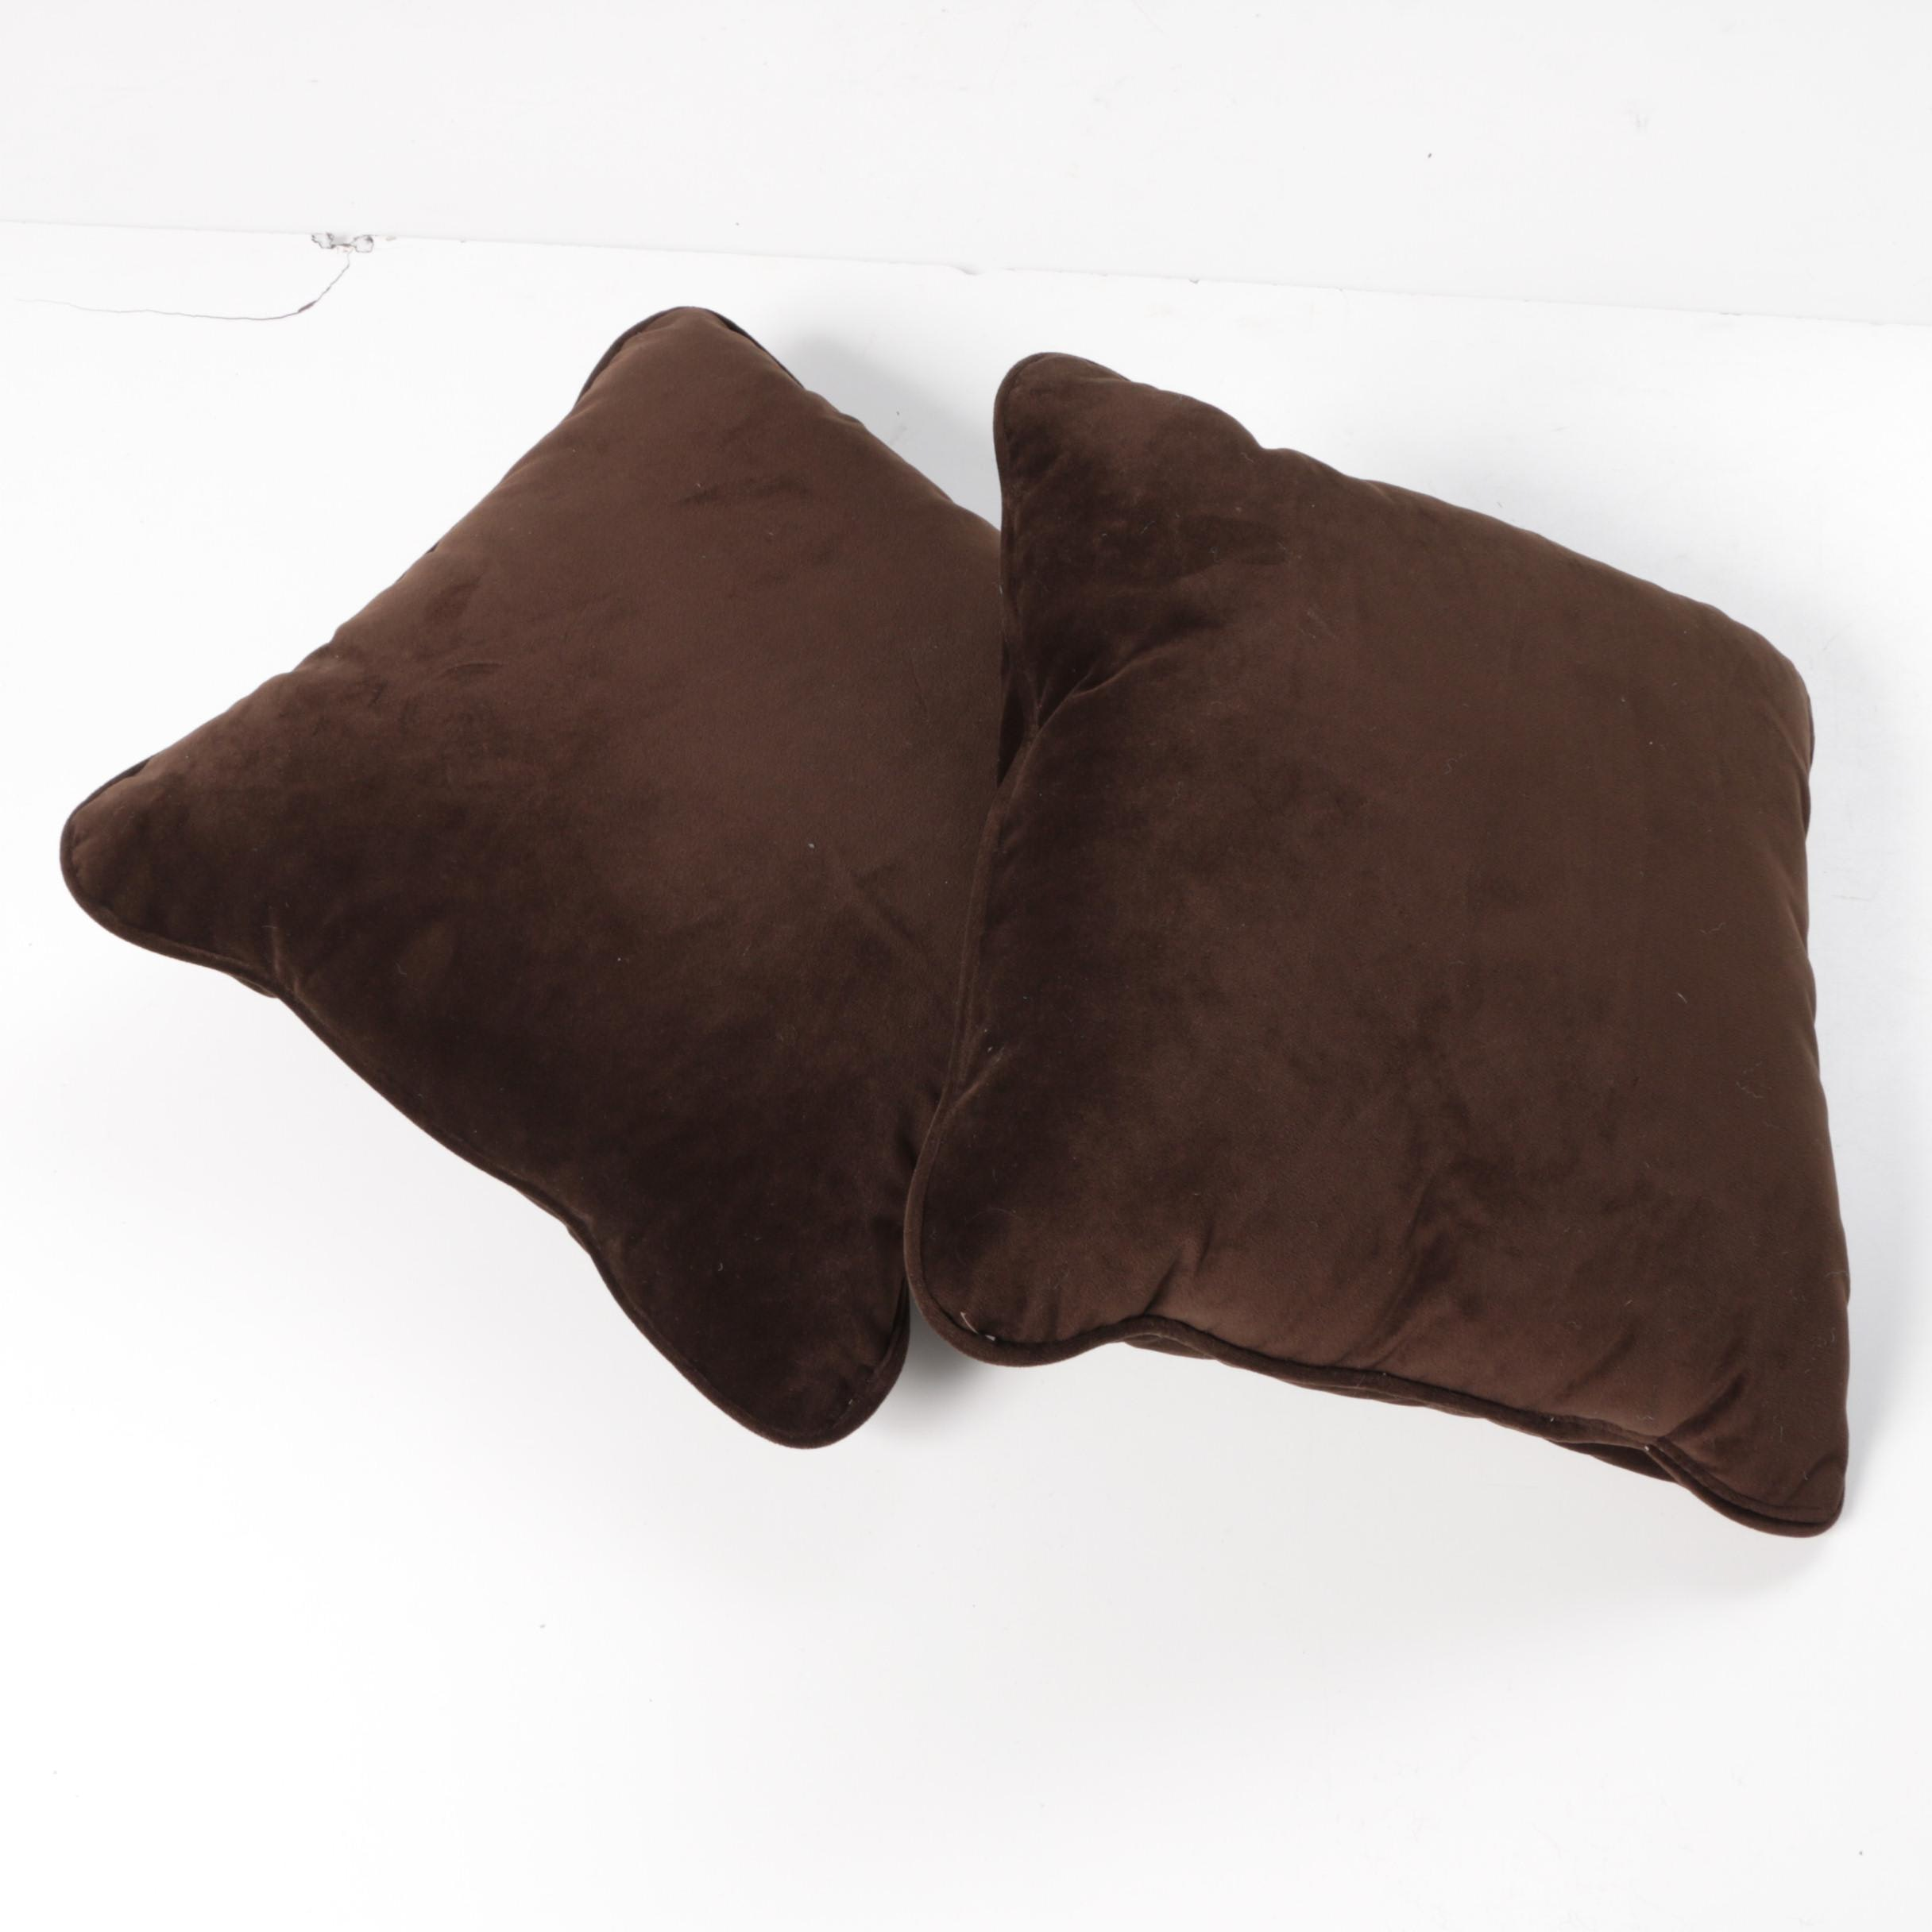 Brown Decorative Throw Pillows